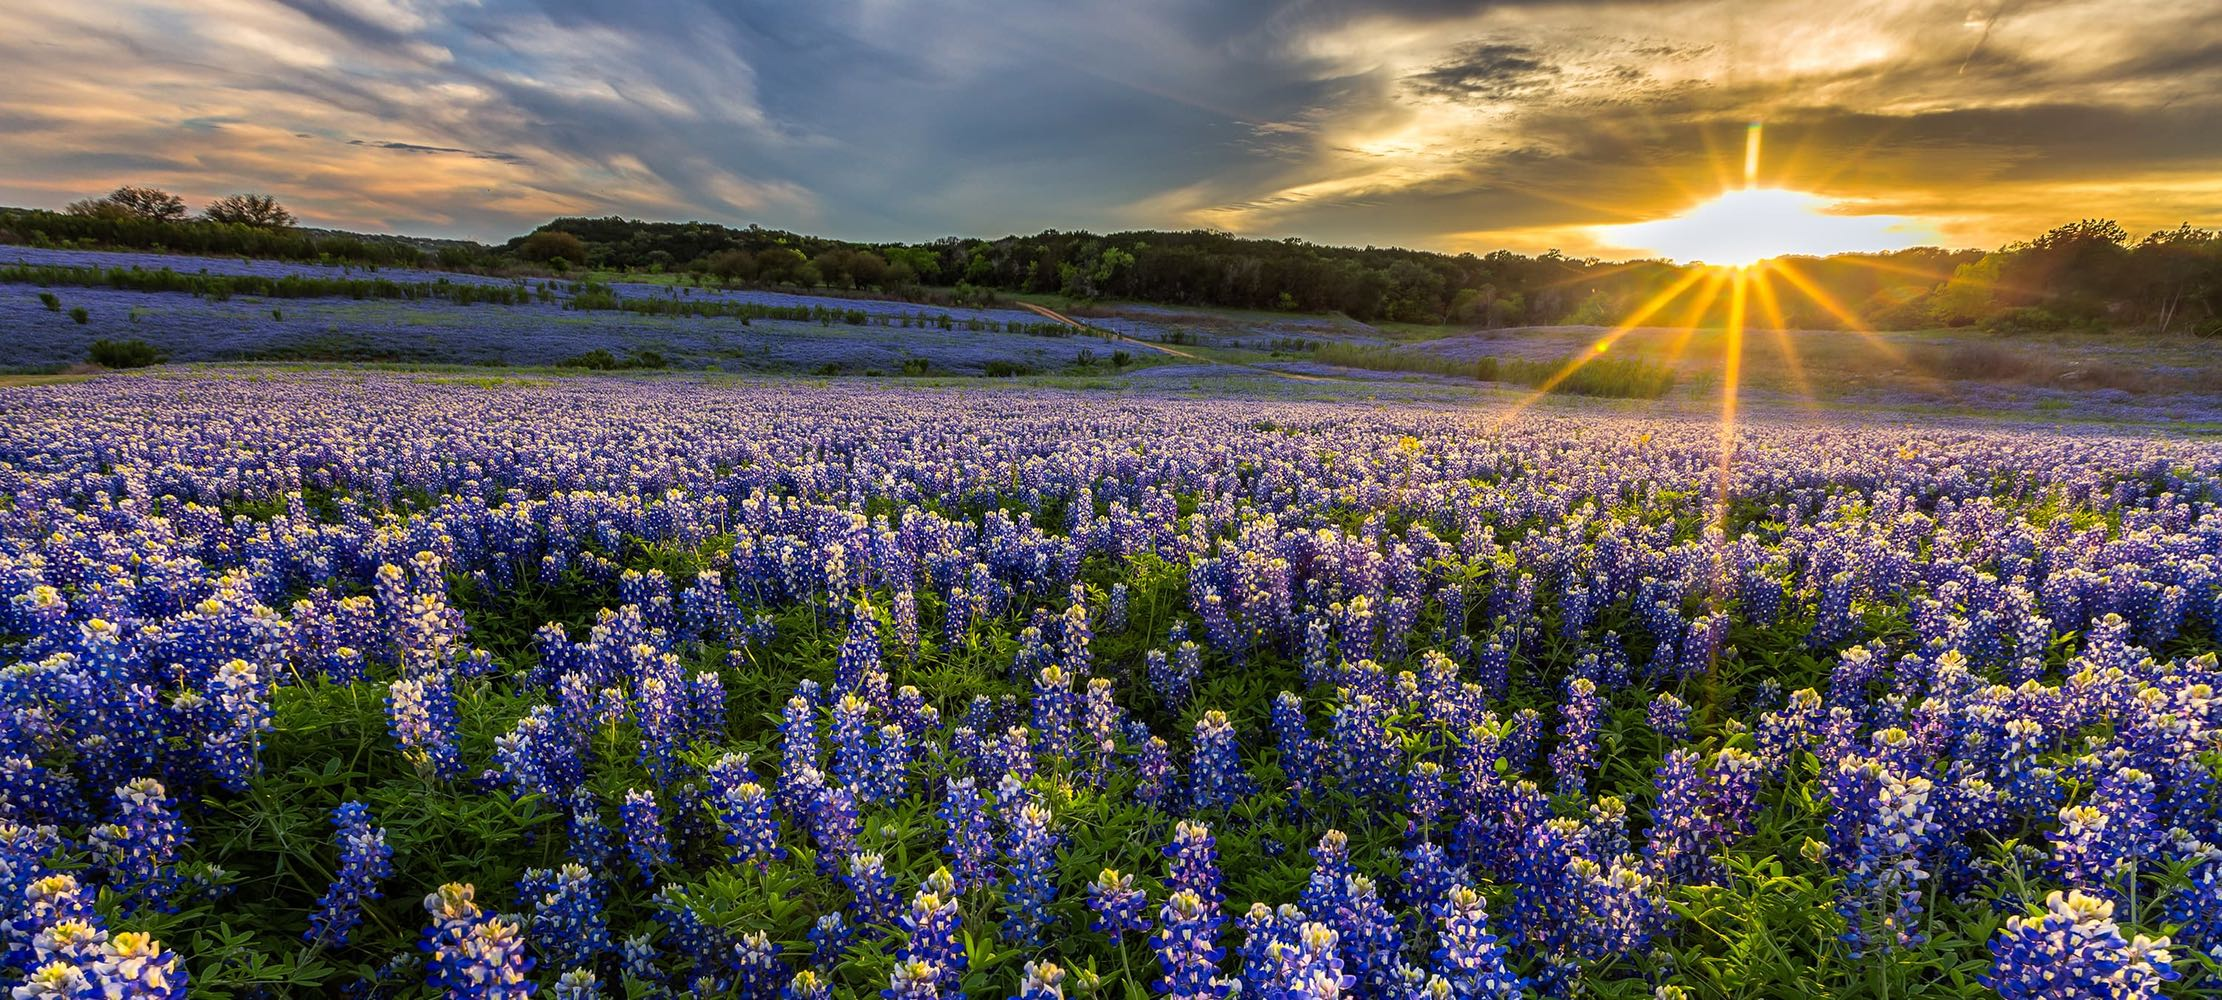 Field of Blue Bonnets at Sunset